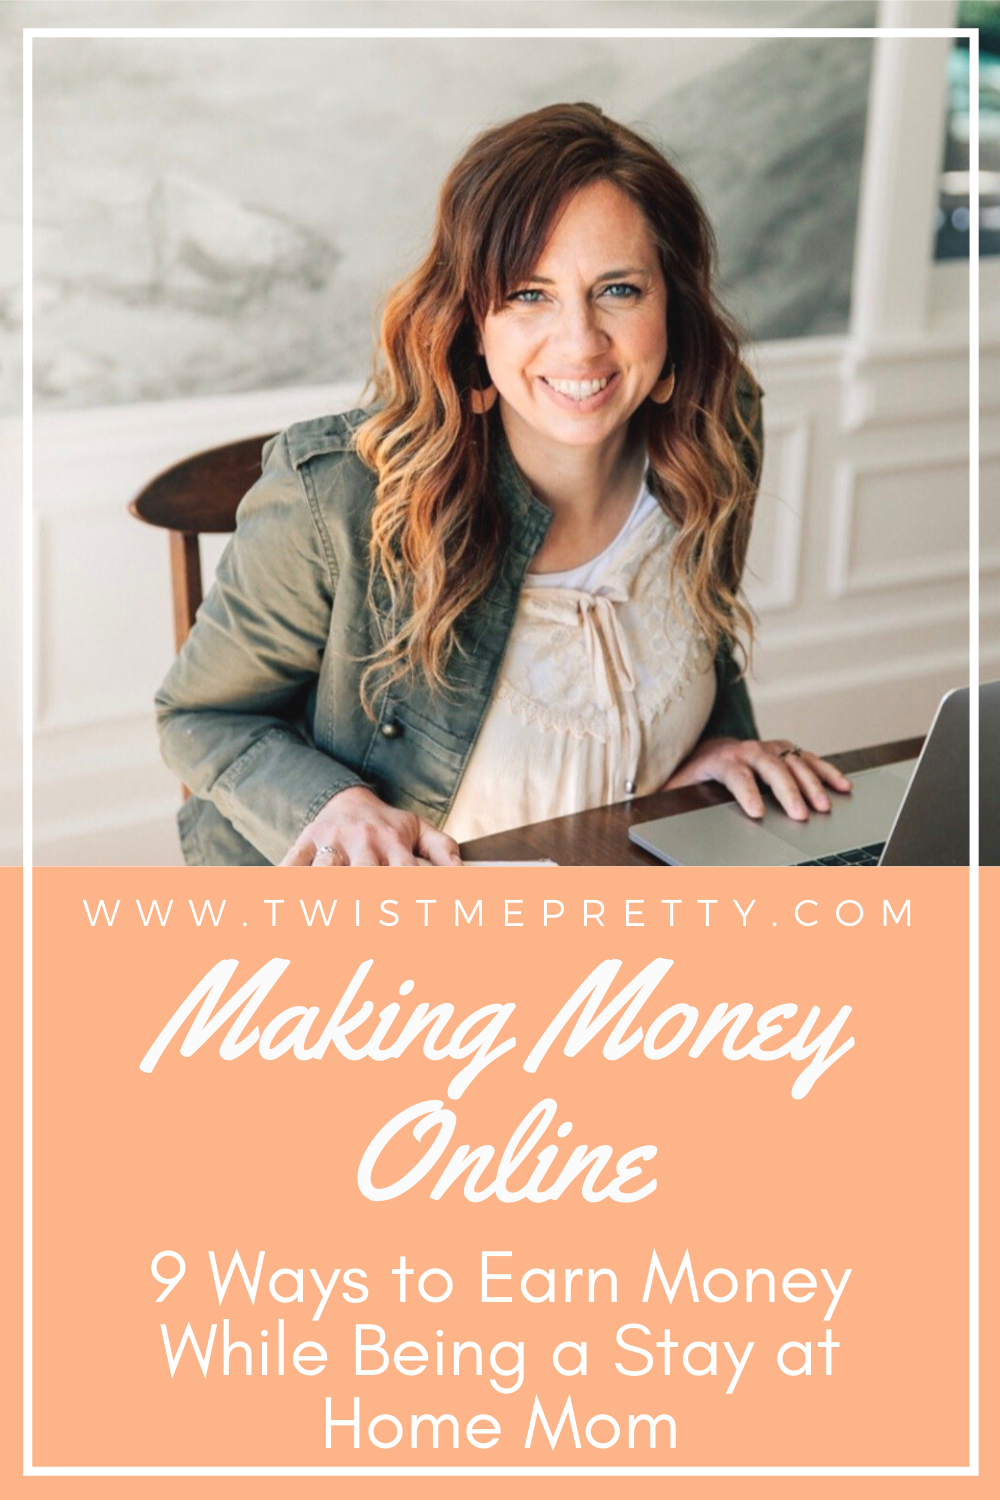 Making Money Online- 9 ways to earn money while being a stay at home mom. www.TwistMePretty.com